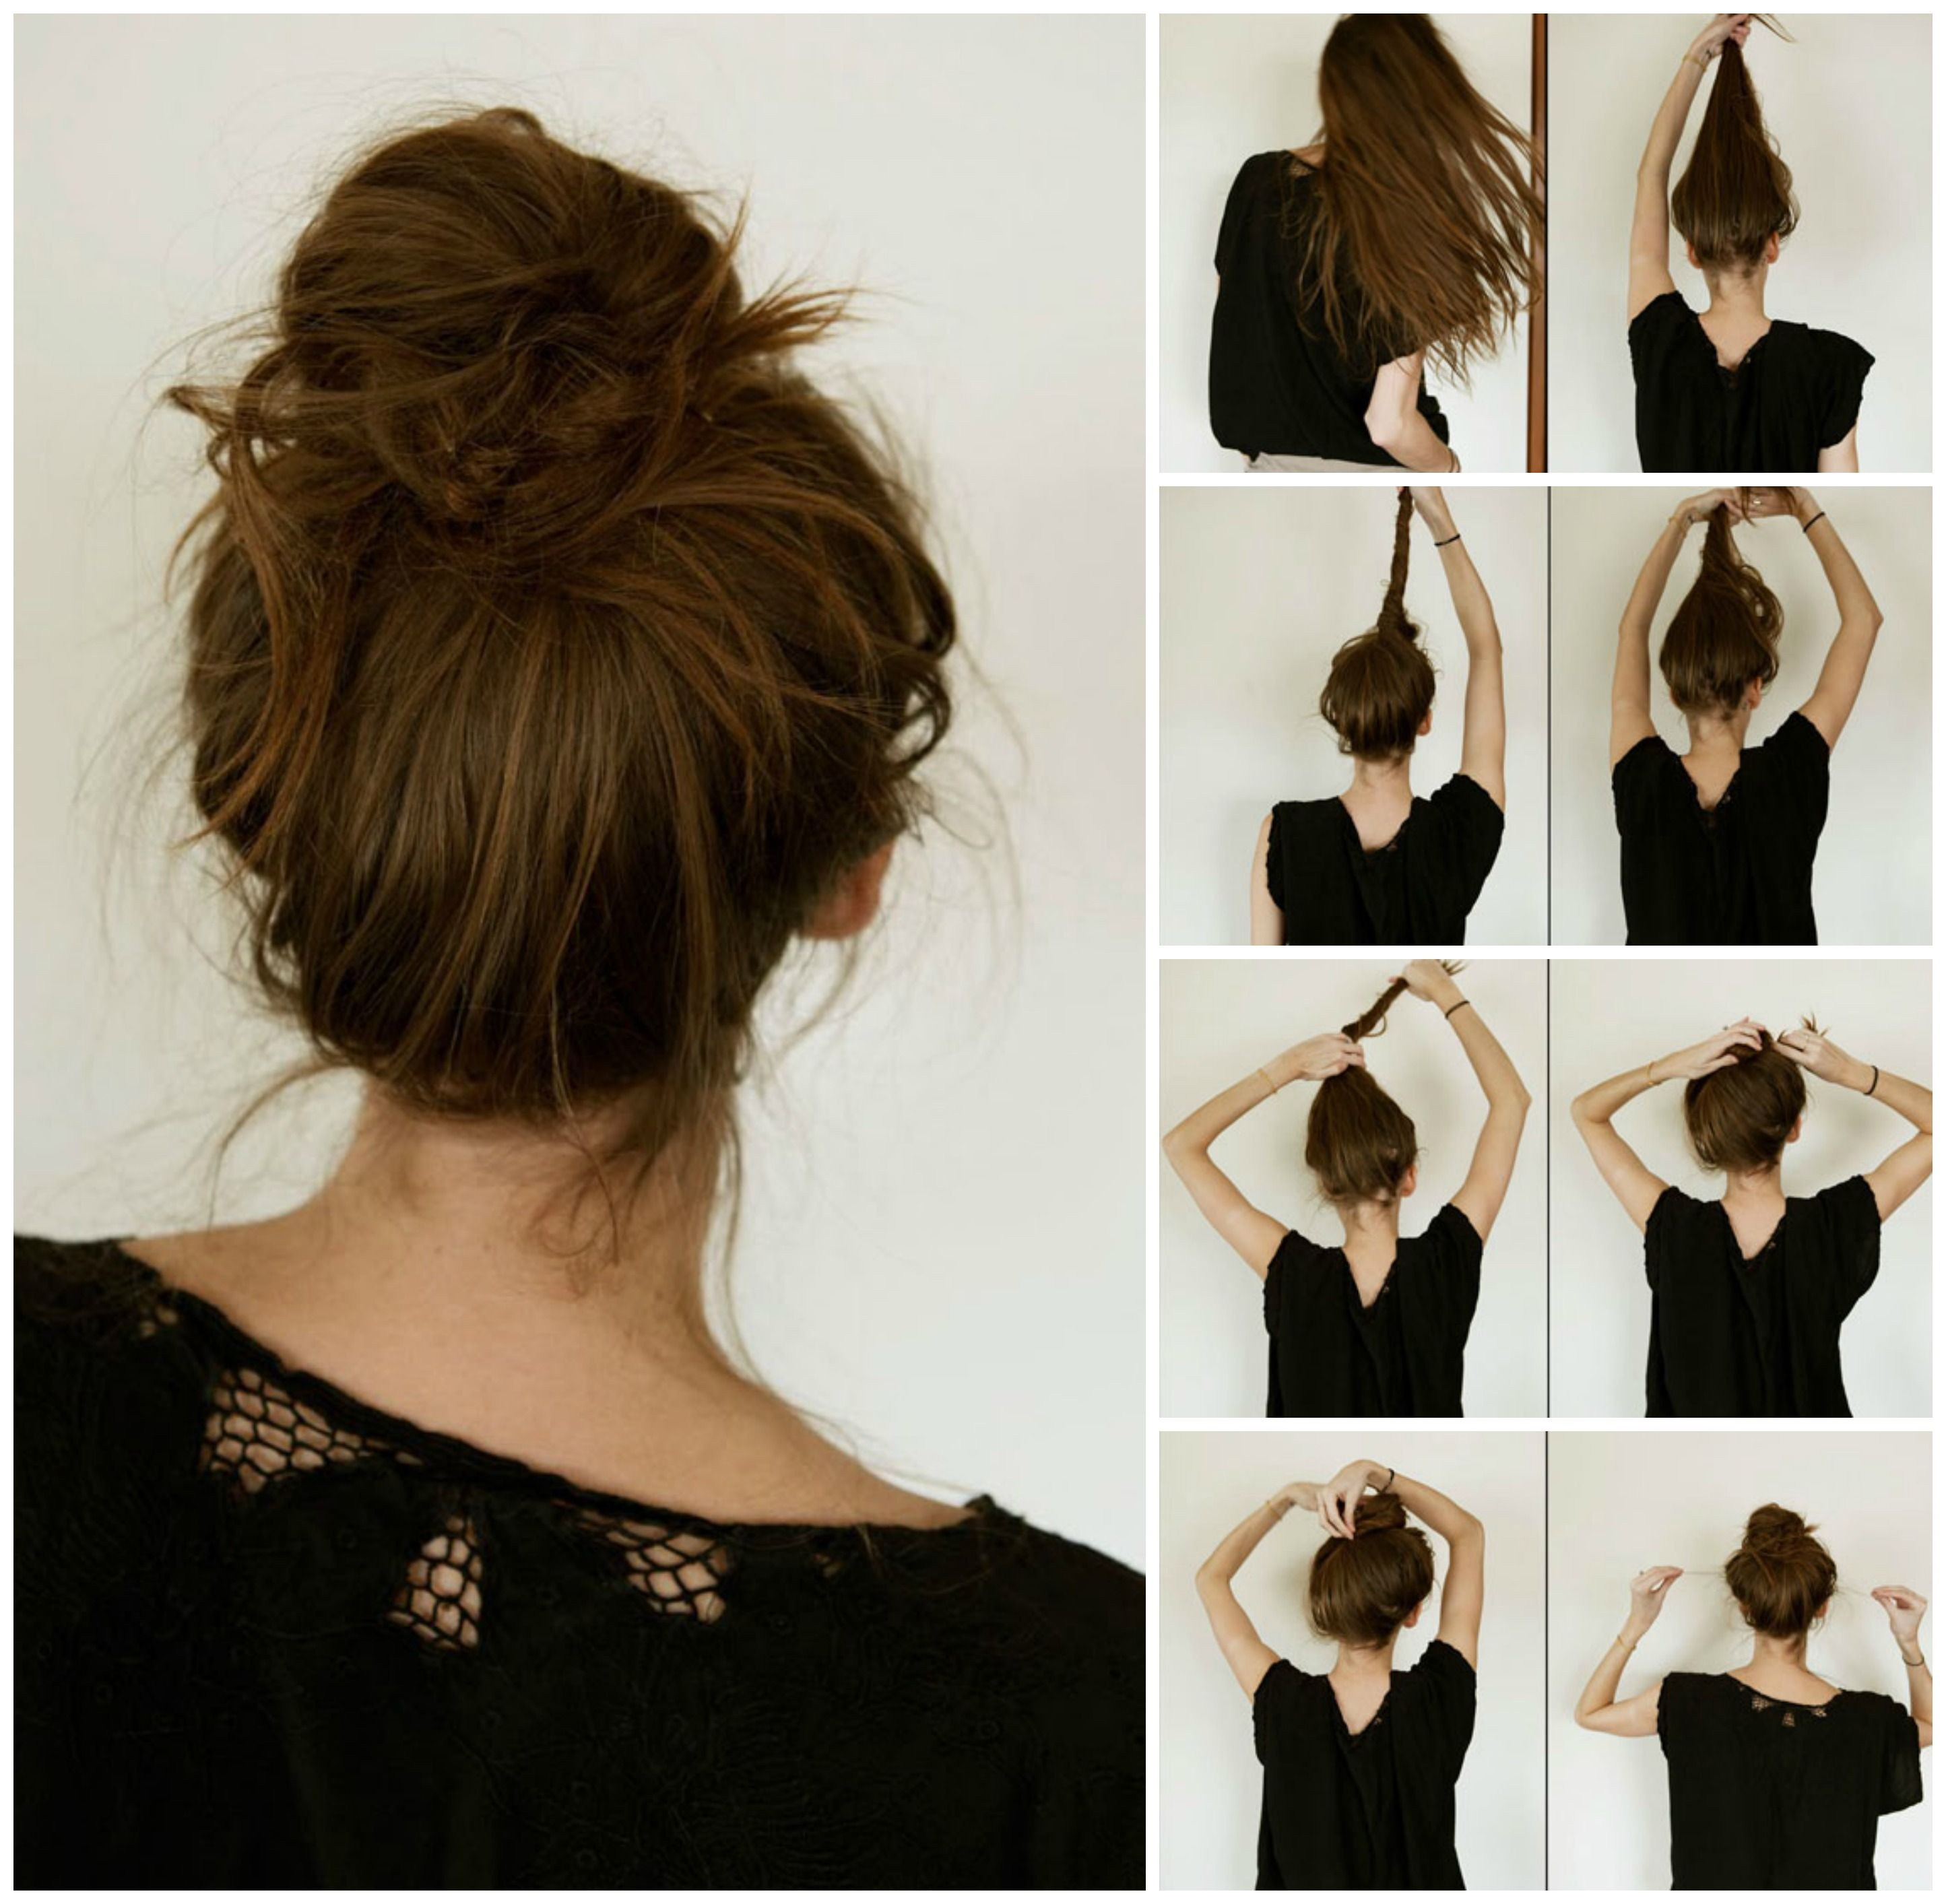 Foto Her Beauty Hairstyle Pinterest Steps? 5 And Step By